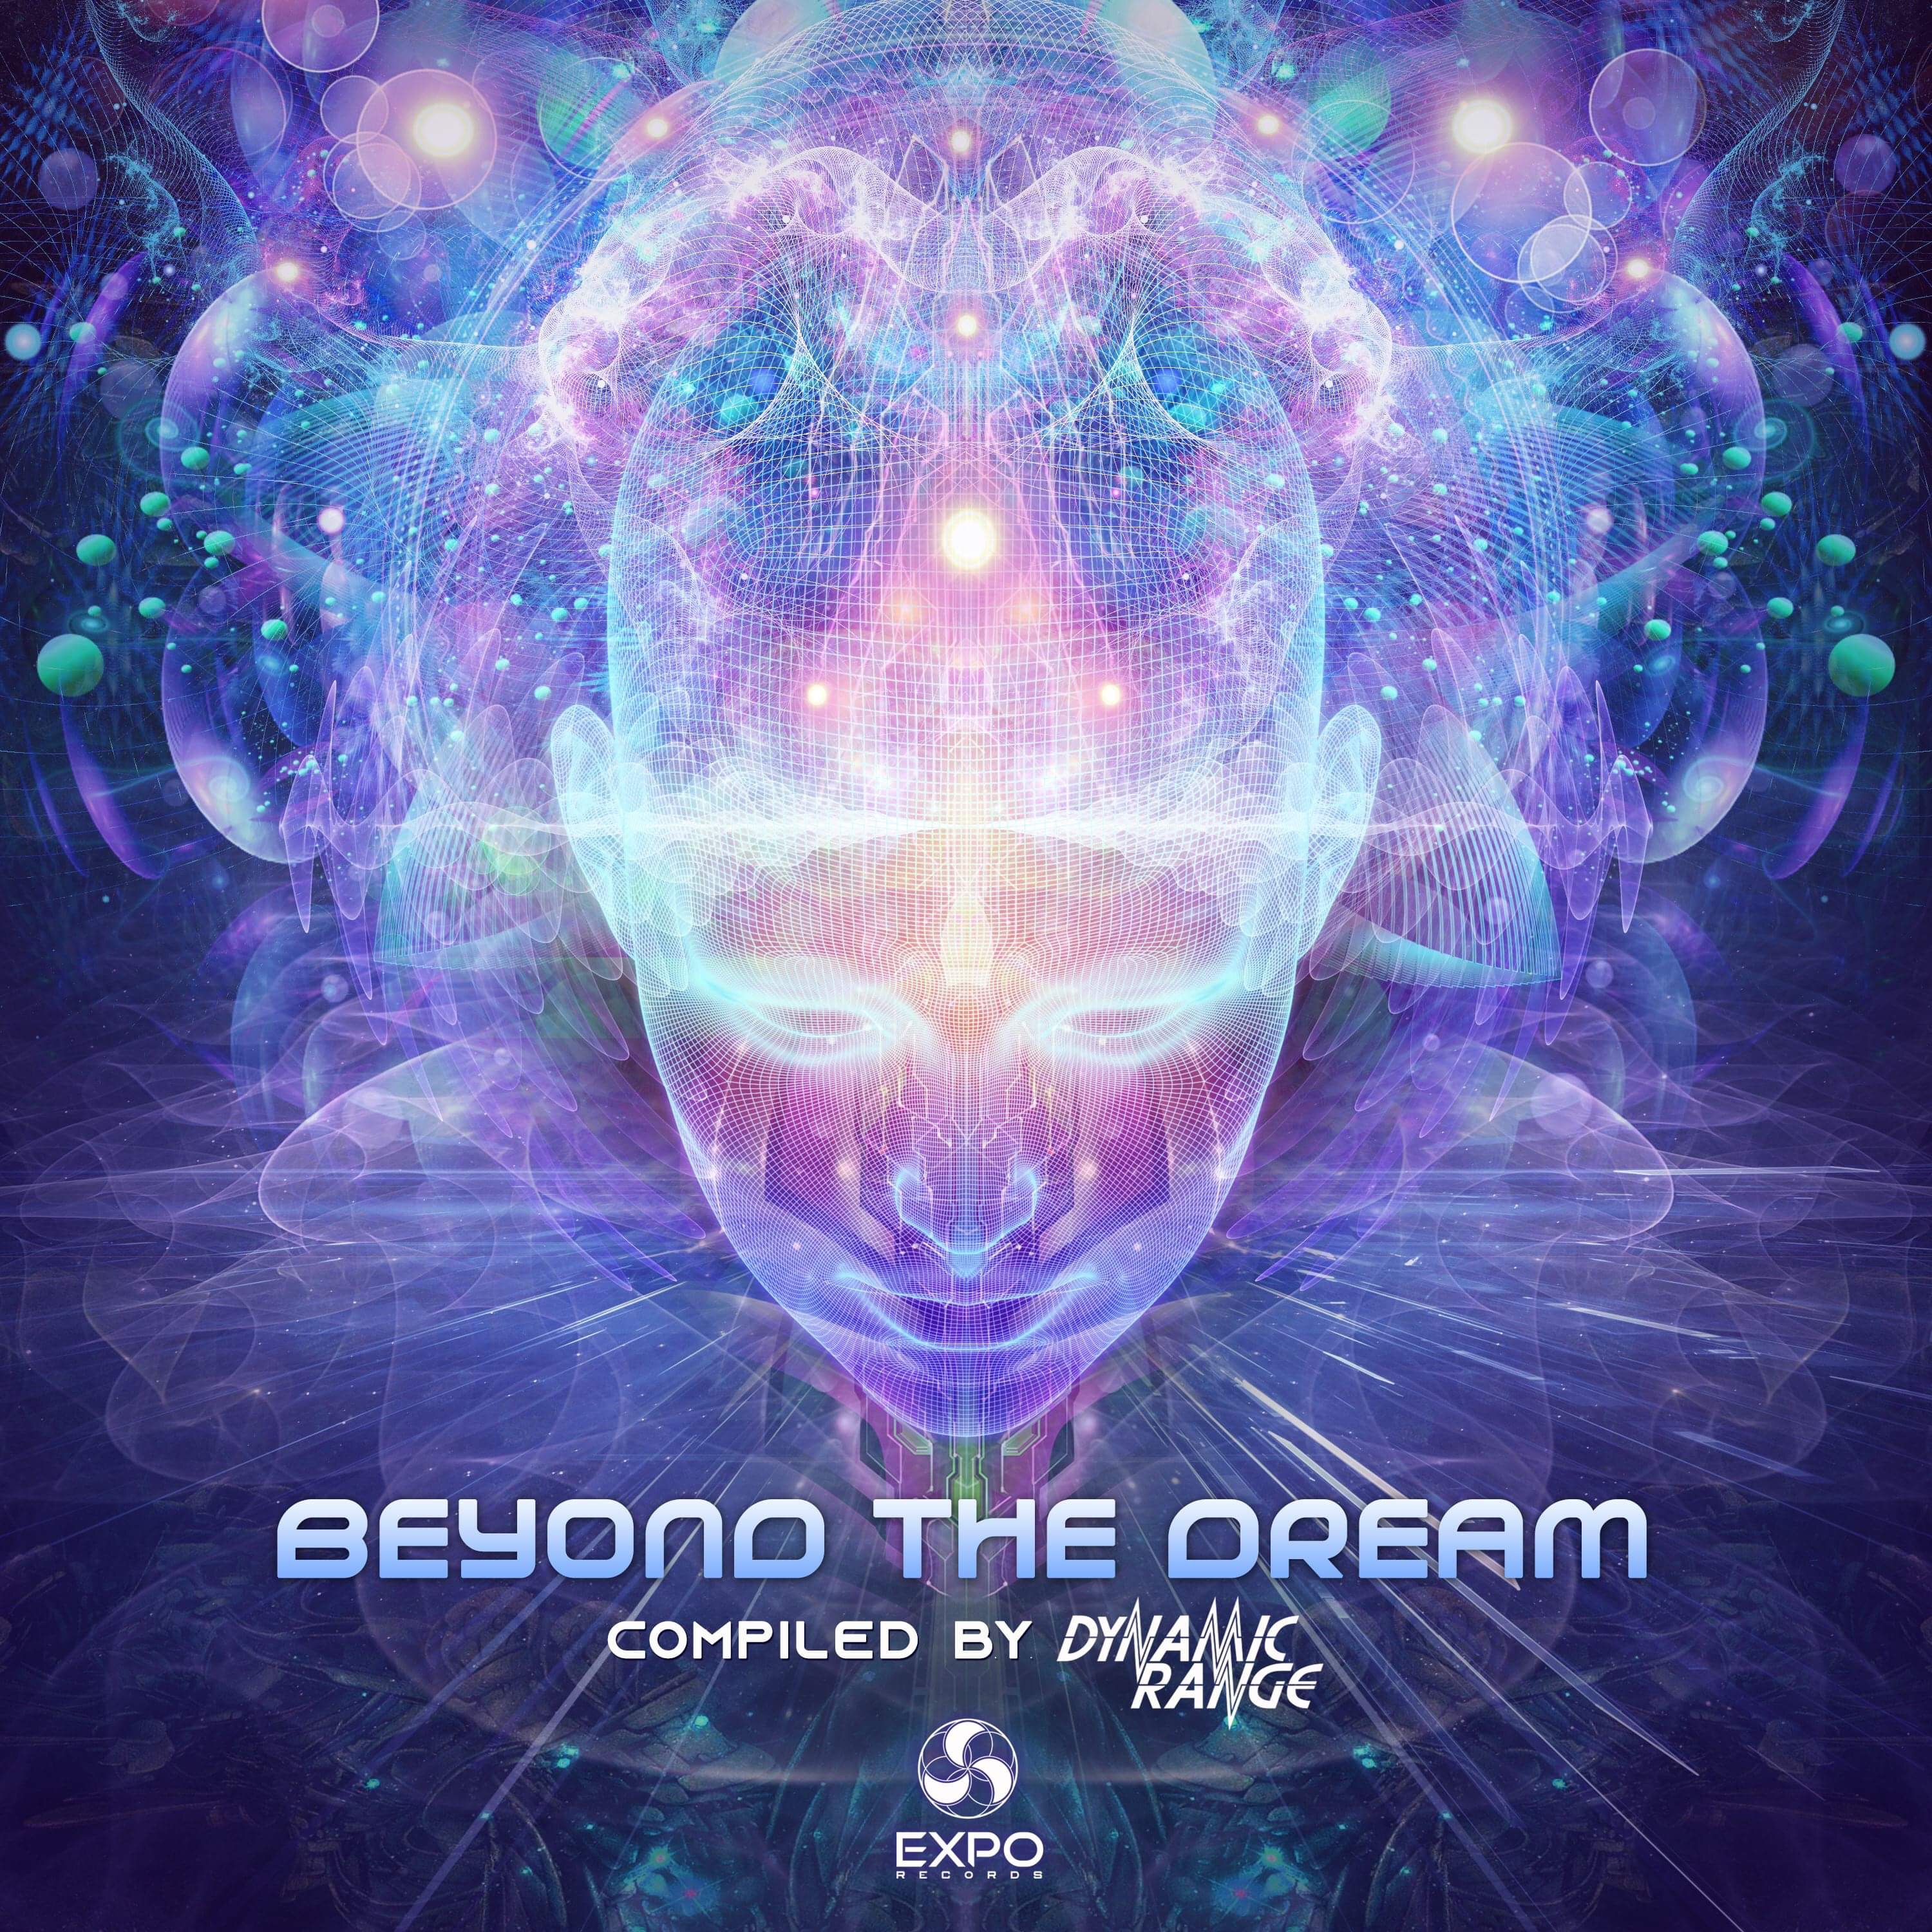 Beyond the Dream V/A compiled by Dynamic Range